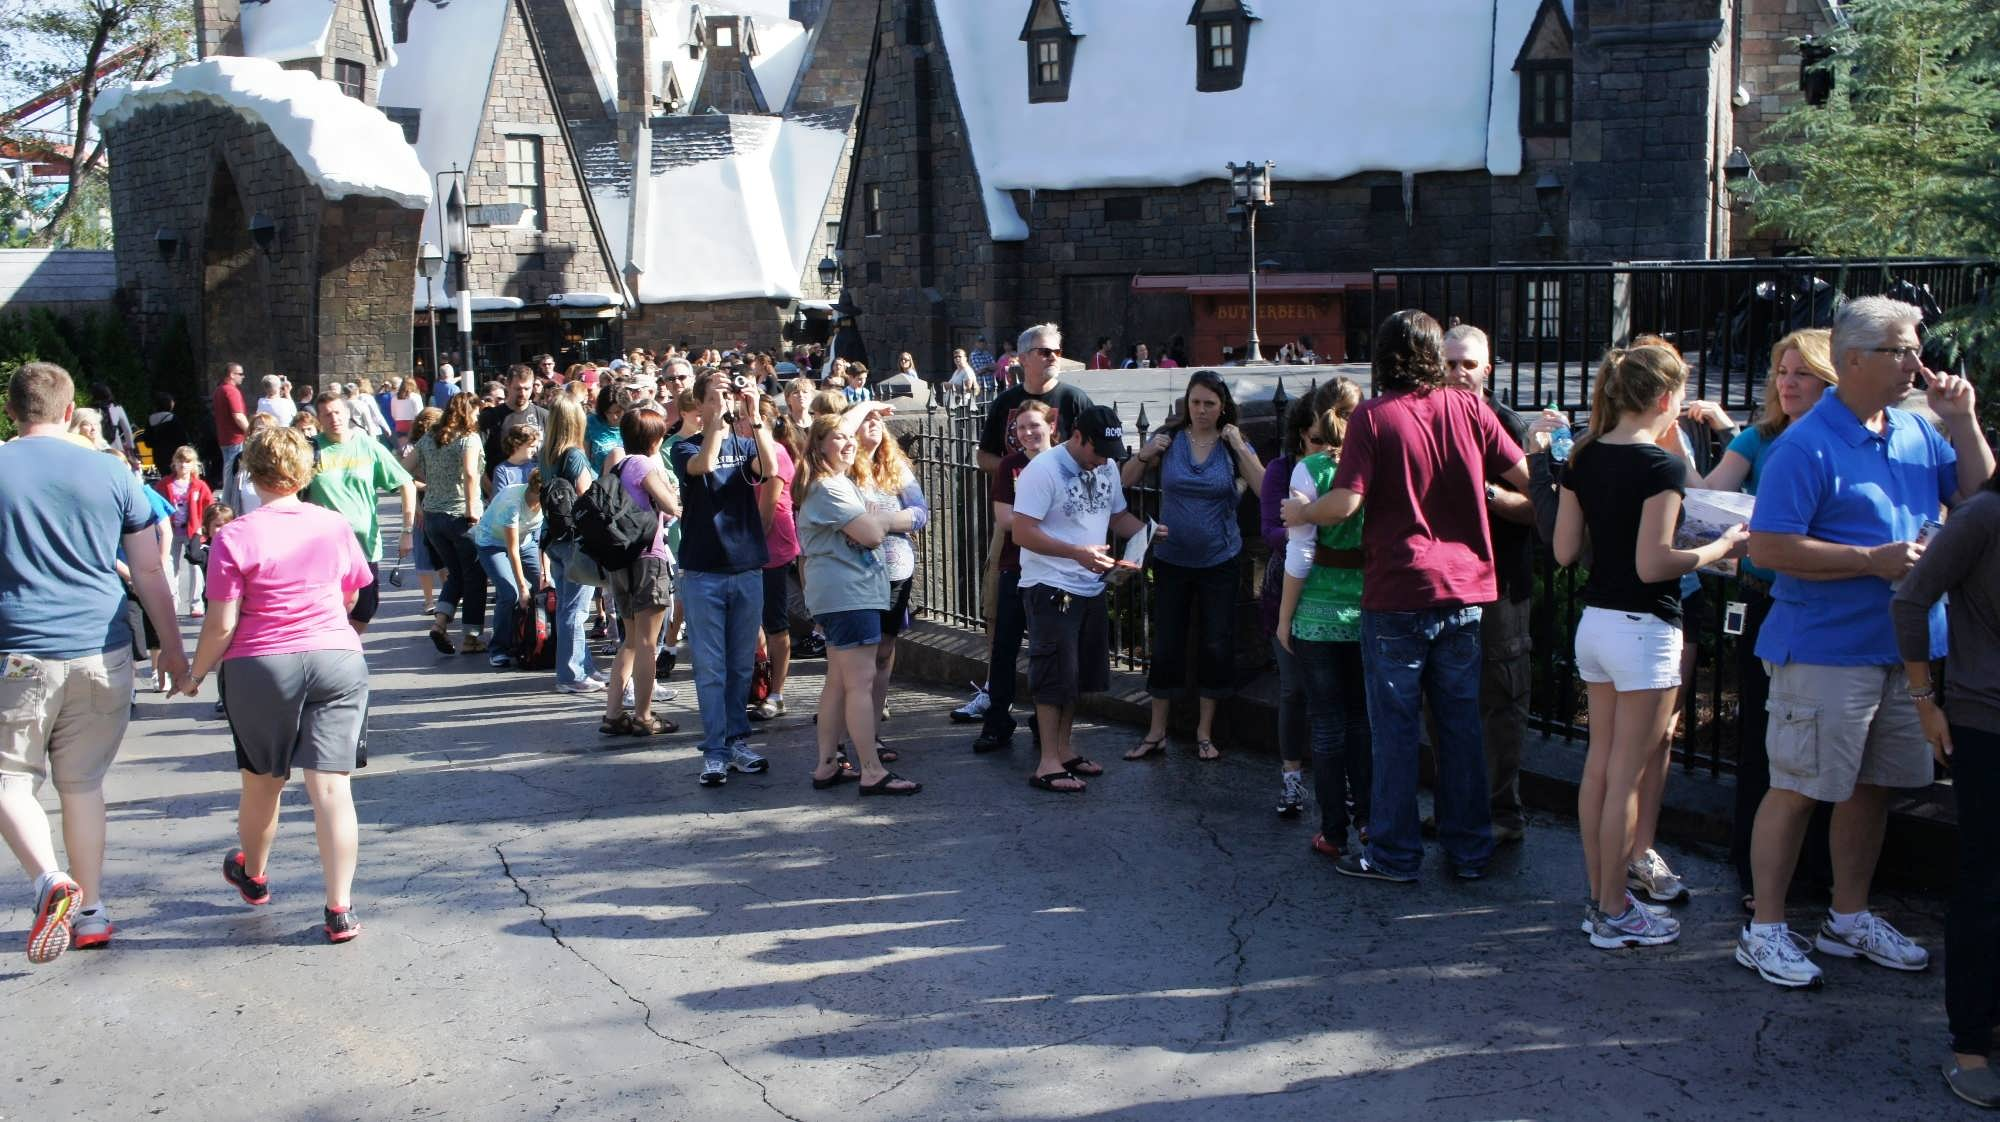 The line stretching out from Hogwarts Castle – keeps going down into Hogsmeade Village (3).